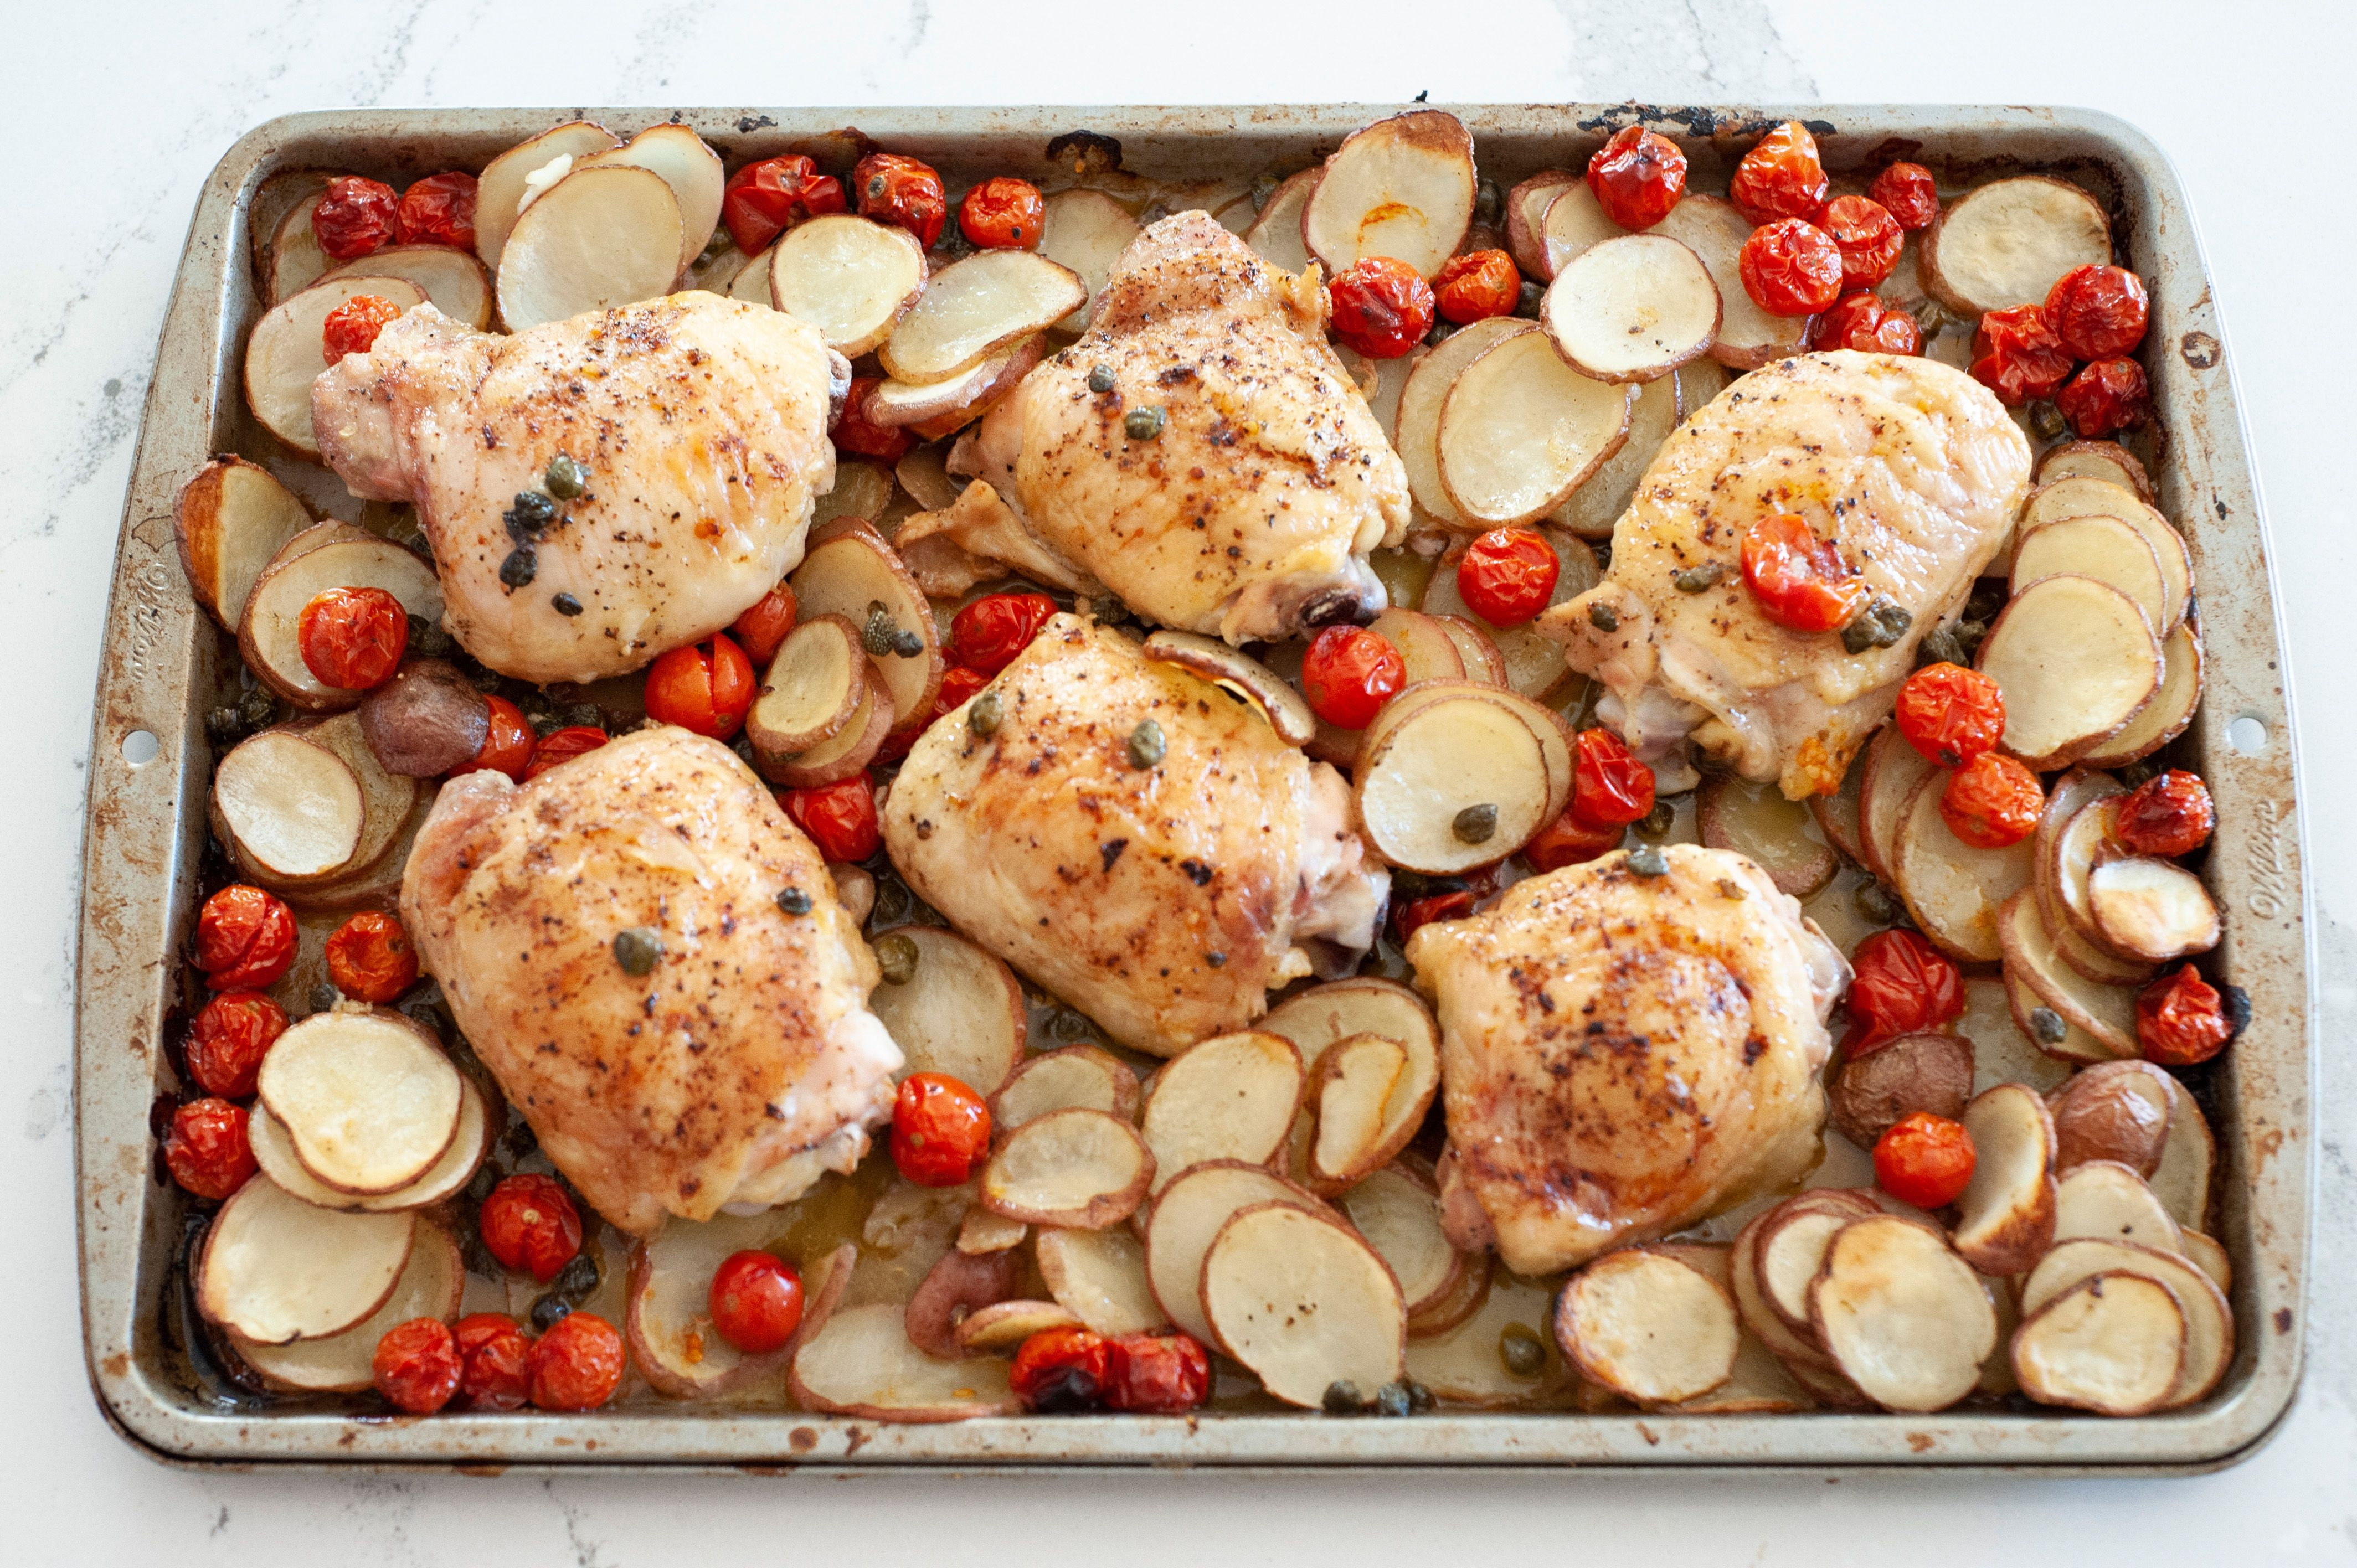 Sheet pan chicken thighs with tomatoes, potatoes, capers, and basil on a pan.